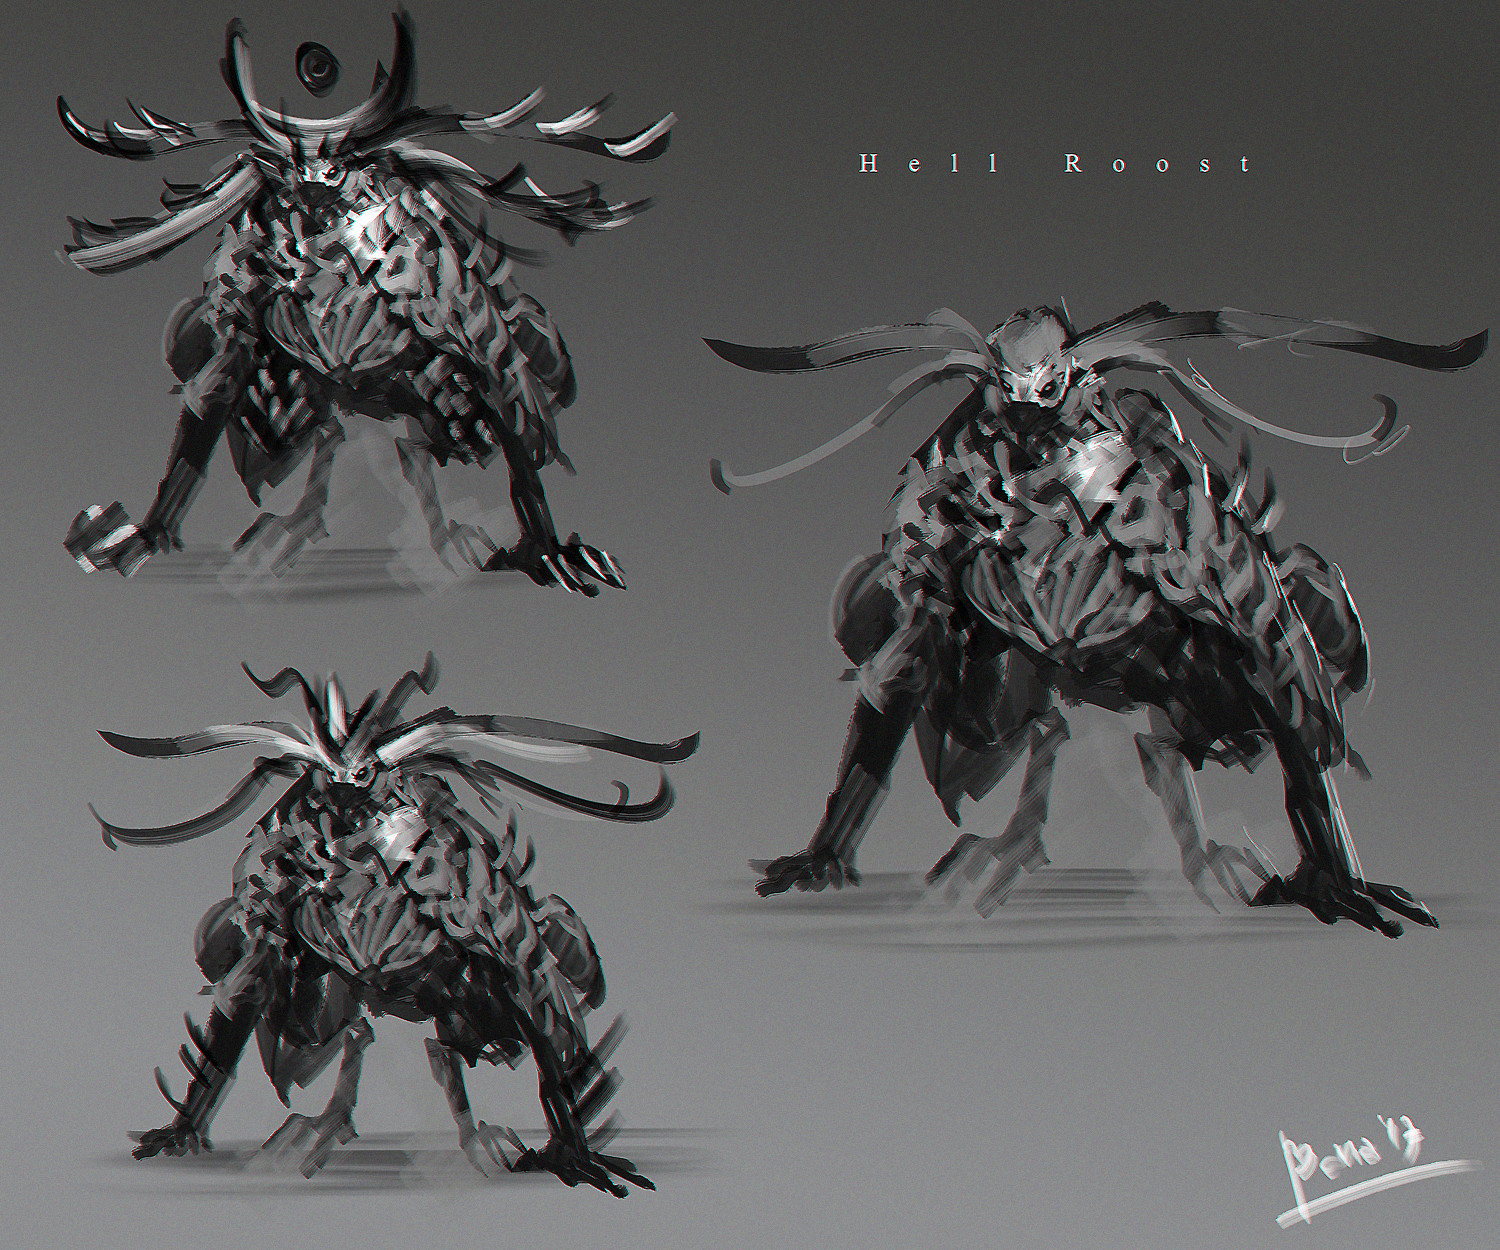 Benedick bana hell roost lores